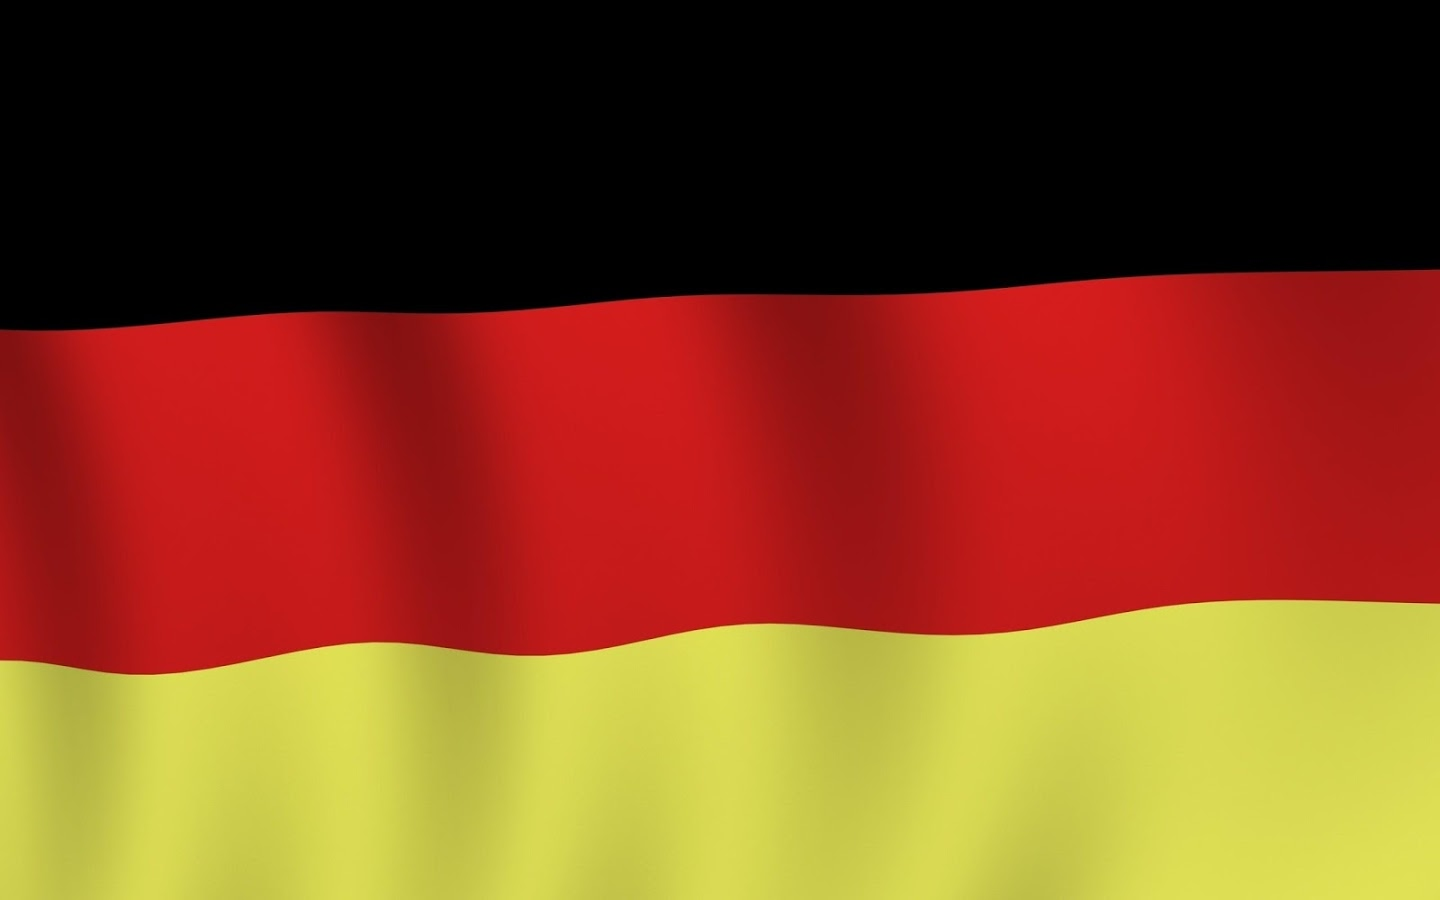 german flag country national flag wallpaper hd download for mobile